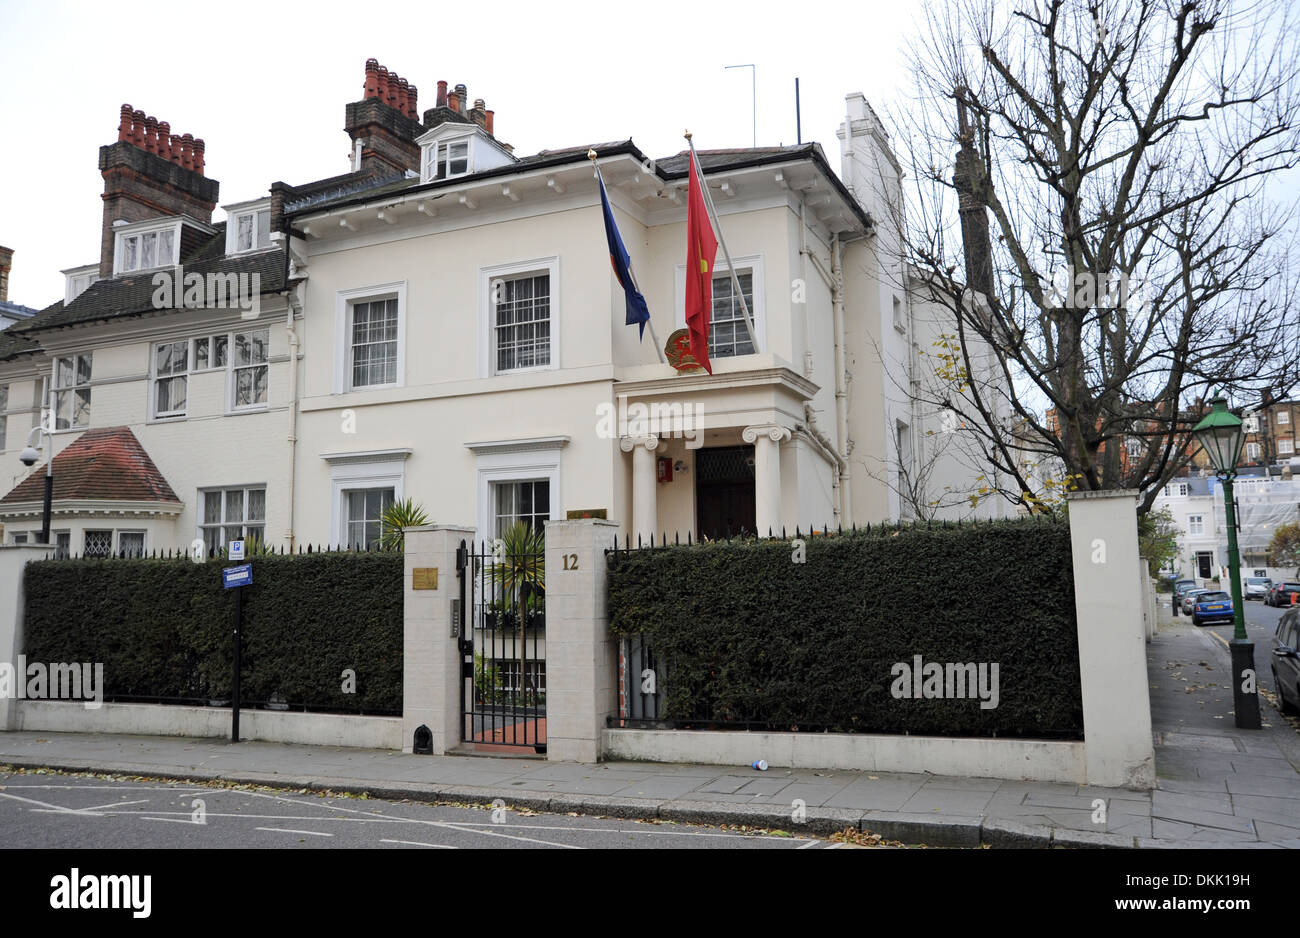 The Vietnam Embassy in the Royal Borough of Kensington and Chelsea London W8 UK Stock Photo